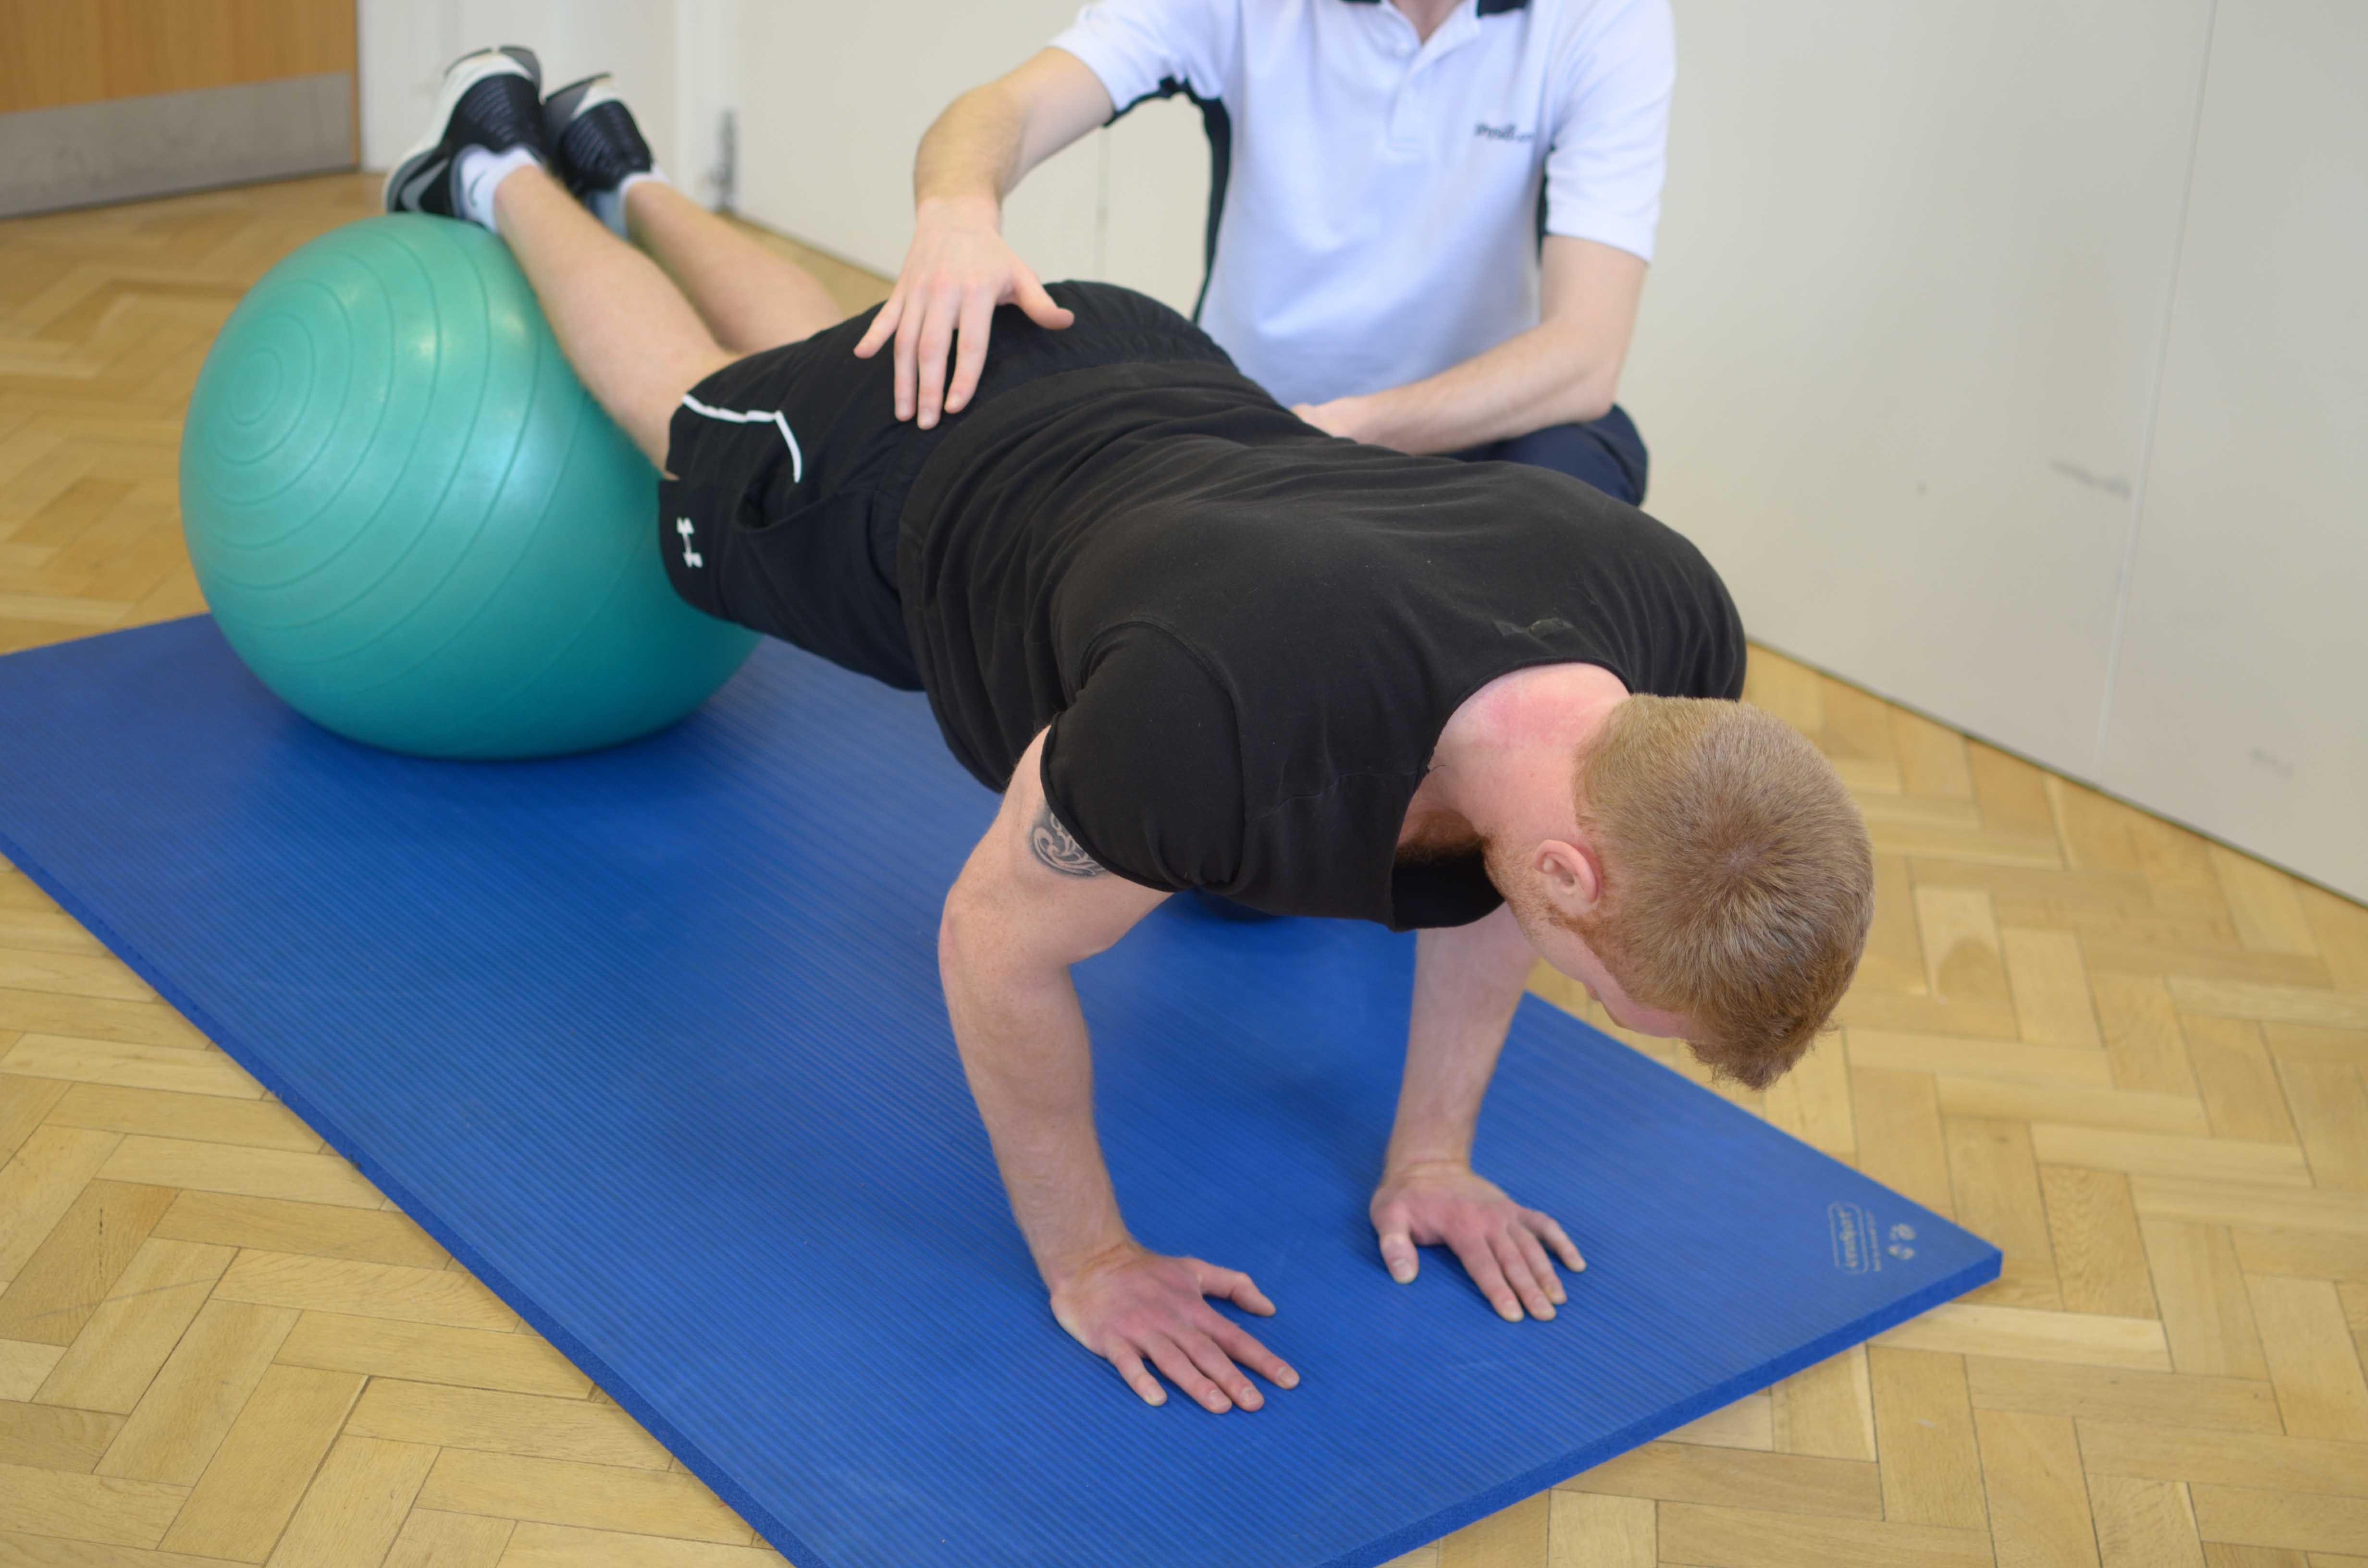 Mobilisation and strengthening exercises for the lower back